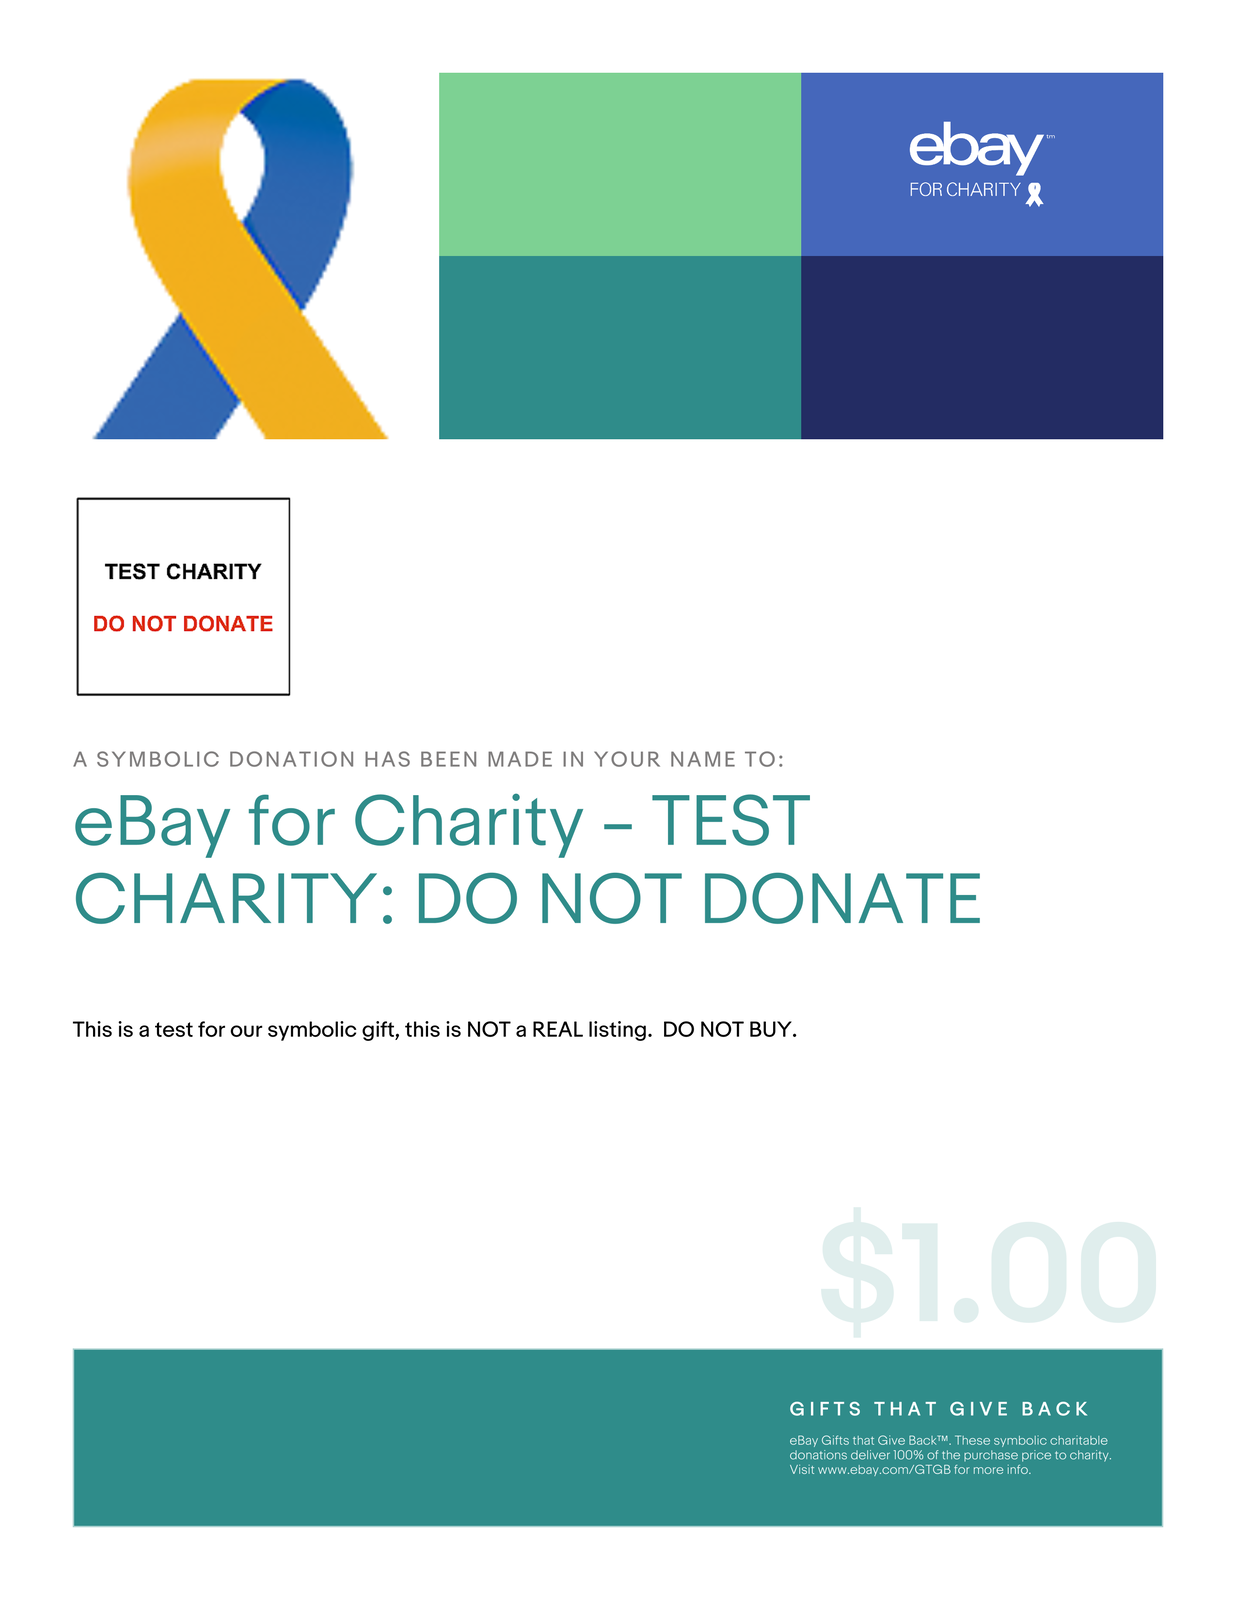 Details about $1 Charitable Donation For: Charity TEST, Please don't  purchase